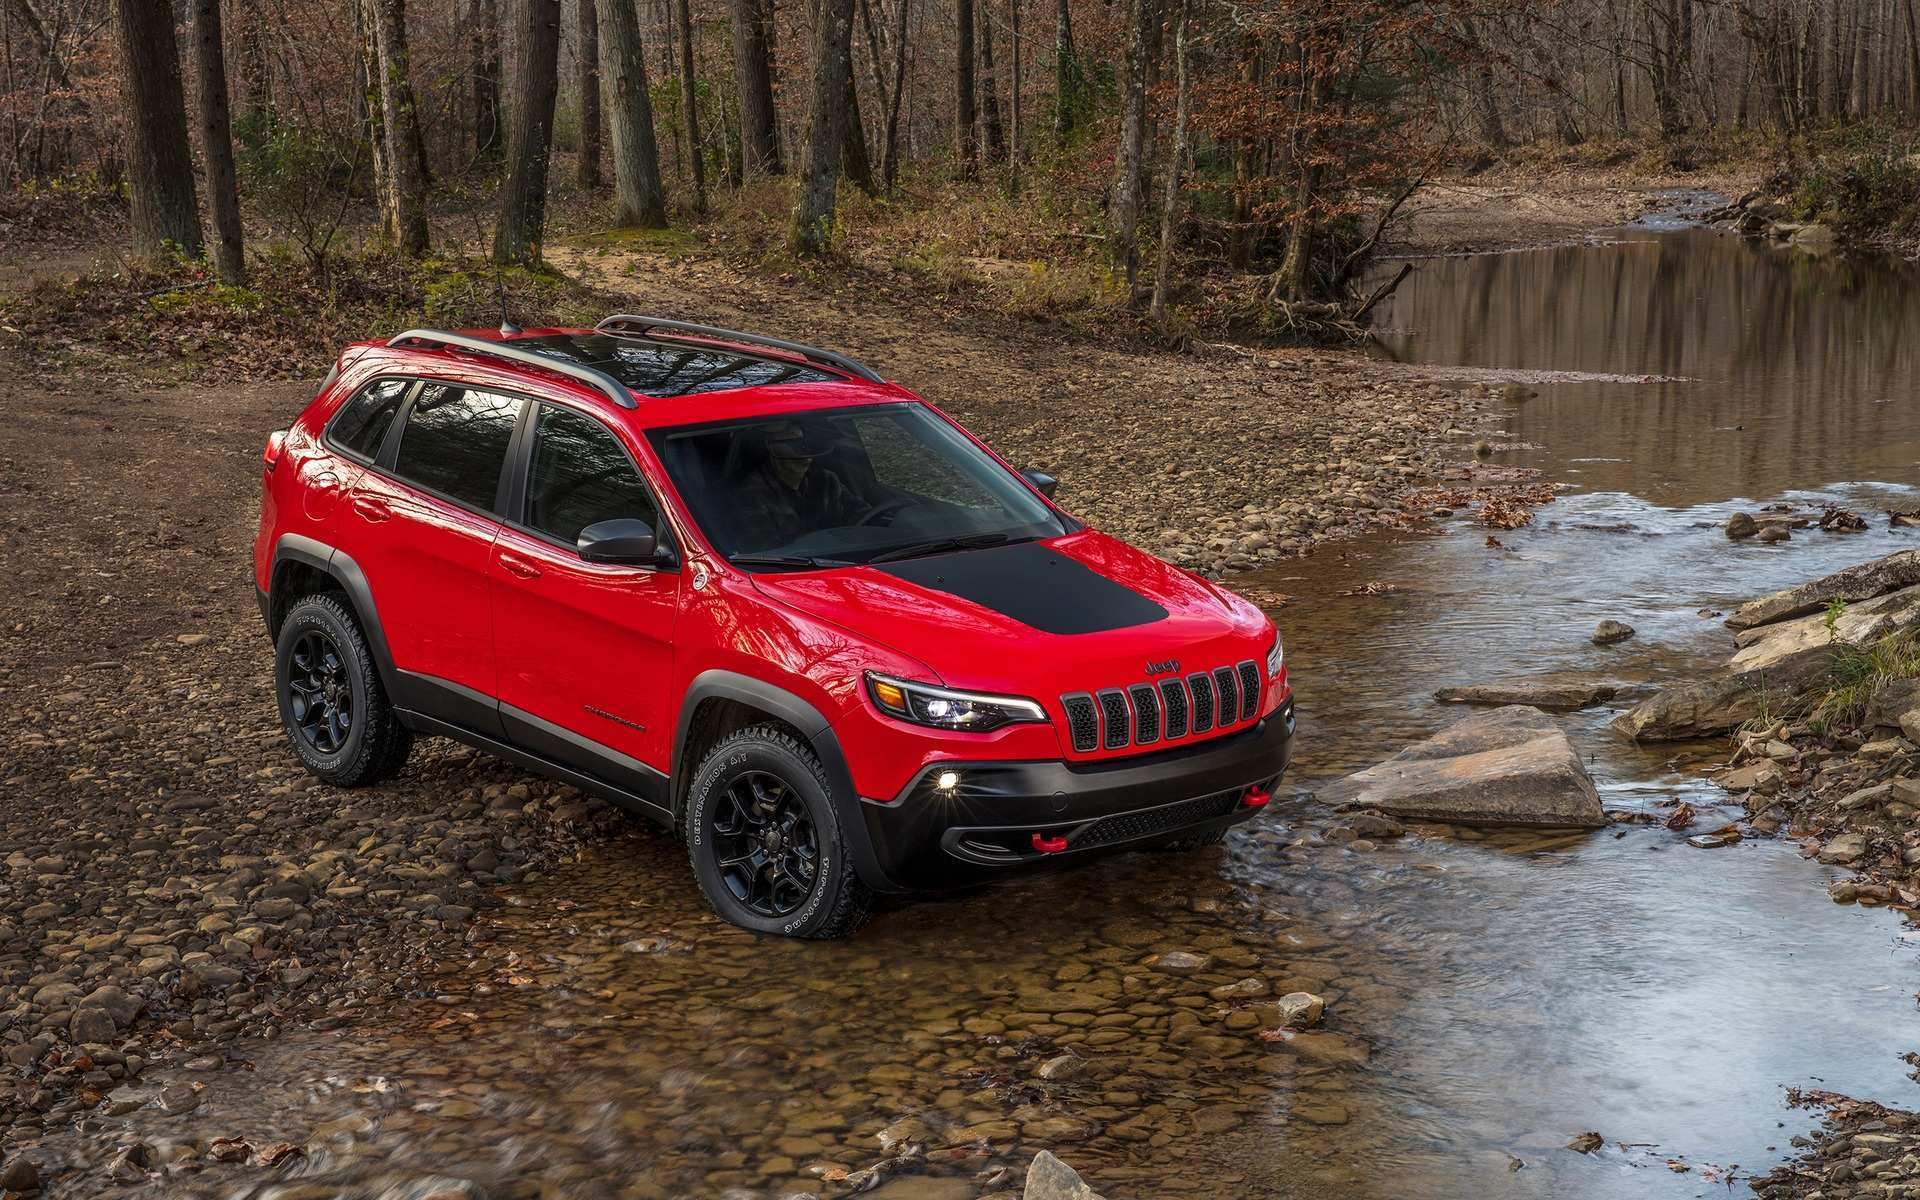 37 Great New 2019 Jeep Cherokee Horsepower Release Specs And Review Pricing by New 2019 Jeep Cherokee Horsepower Release Specs And Review